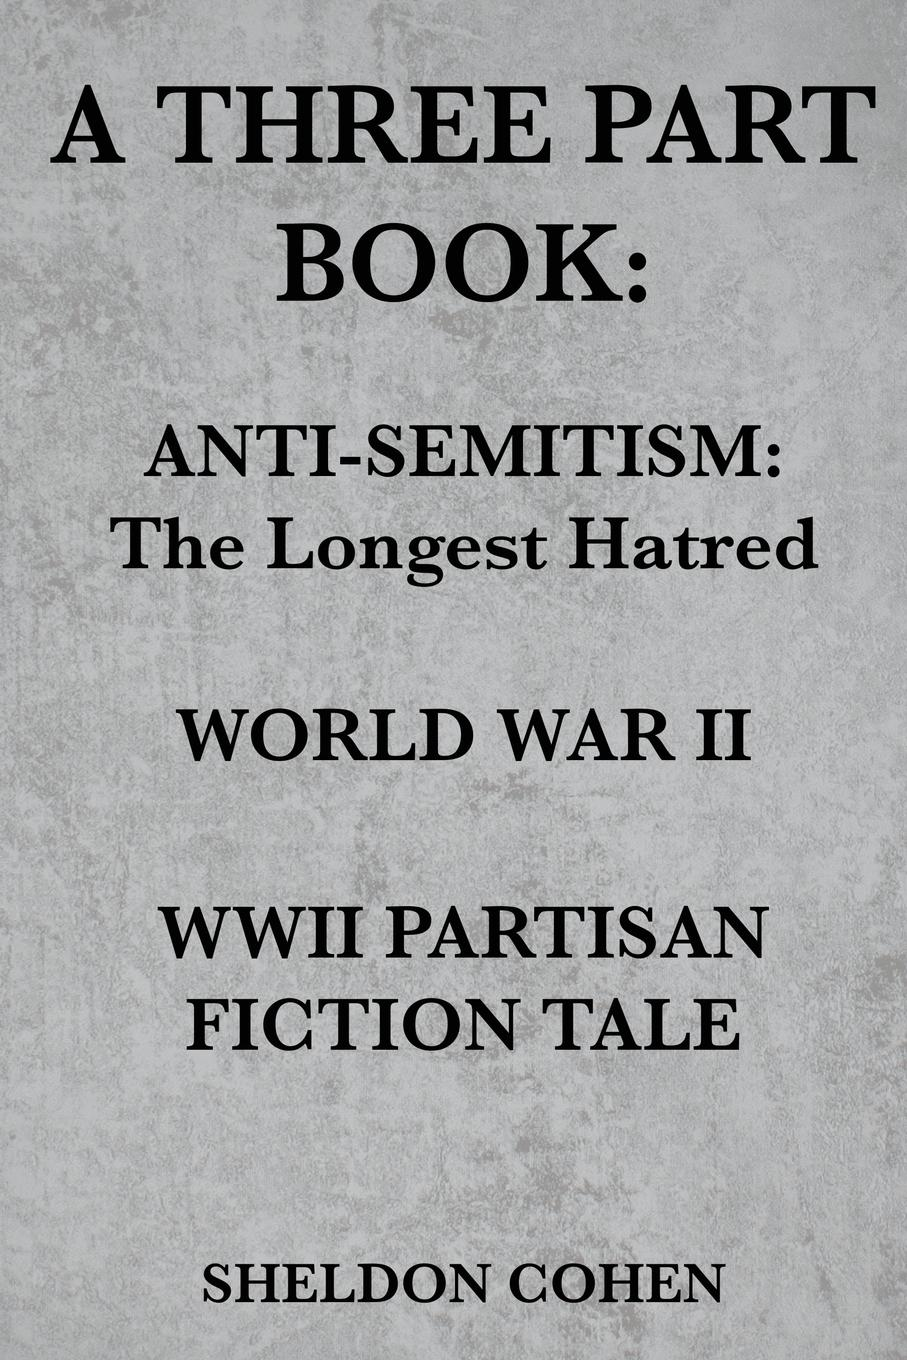 Sheldon Cohen A THREE PART BOOK. Anti-Semitism:The Longest Hatred / World War II / WWII Partisan Fiction Tale russian origins of the first world war